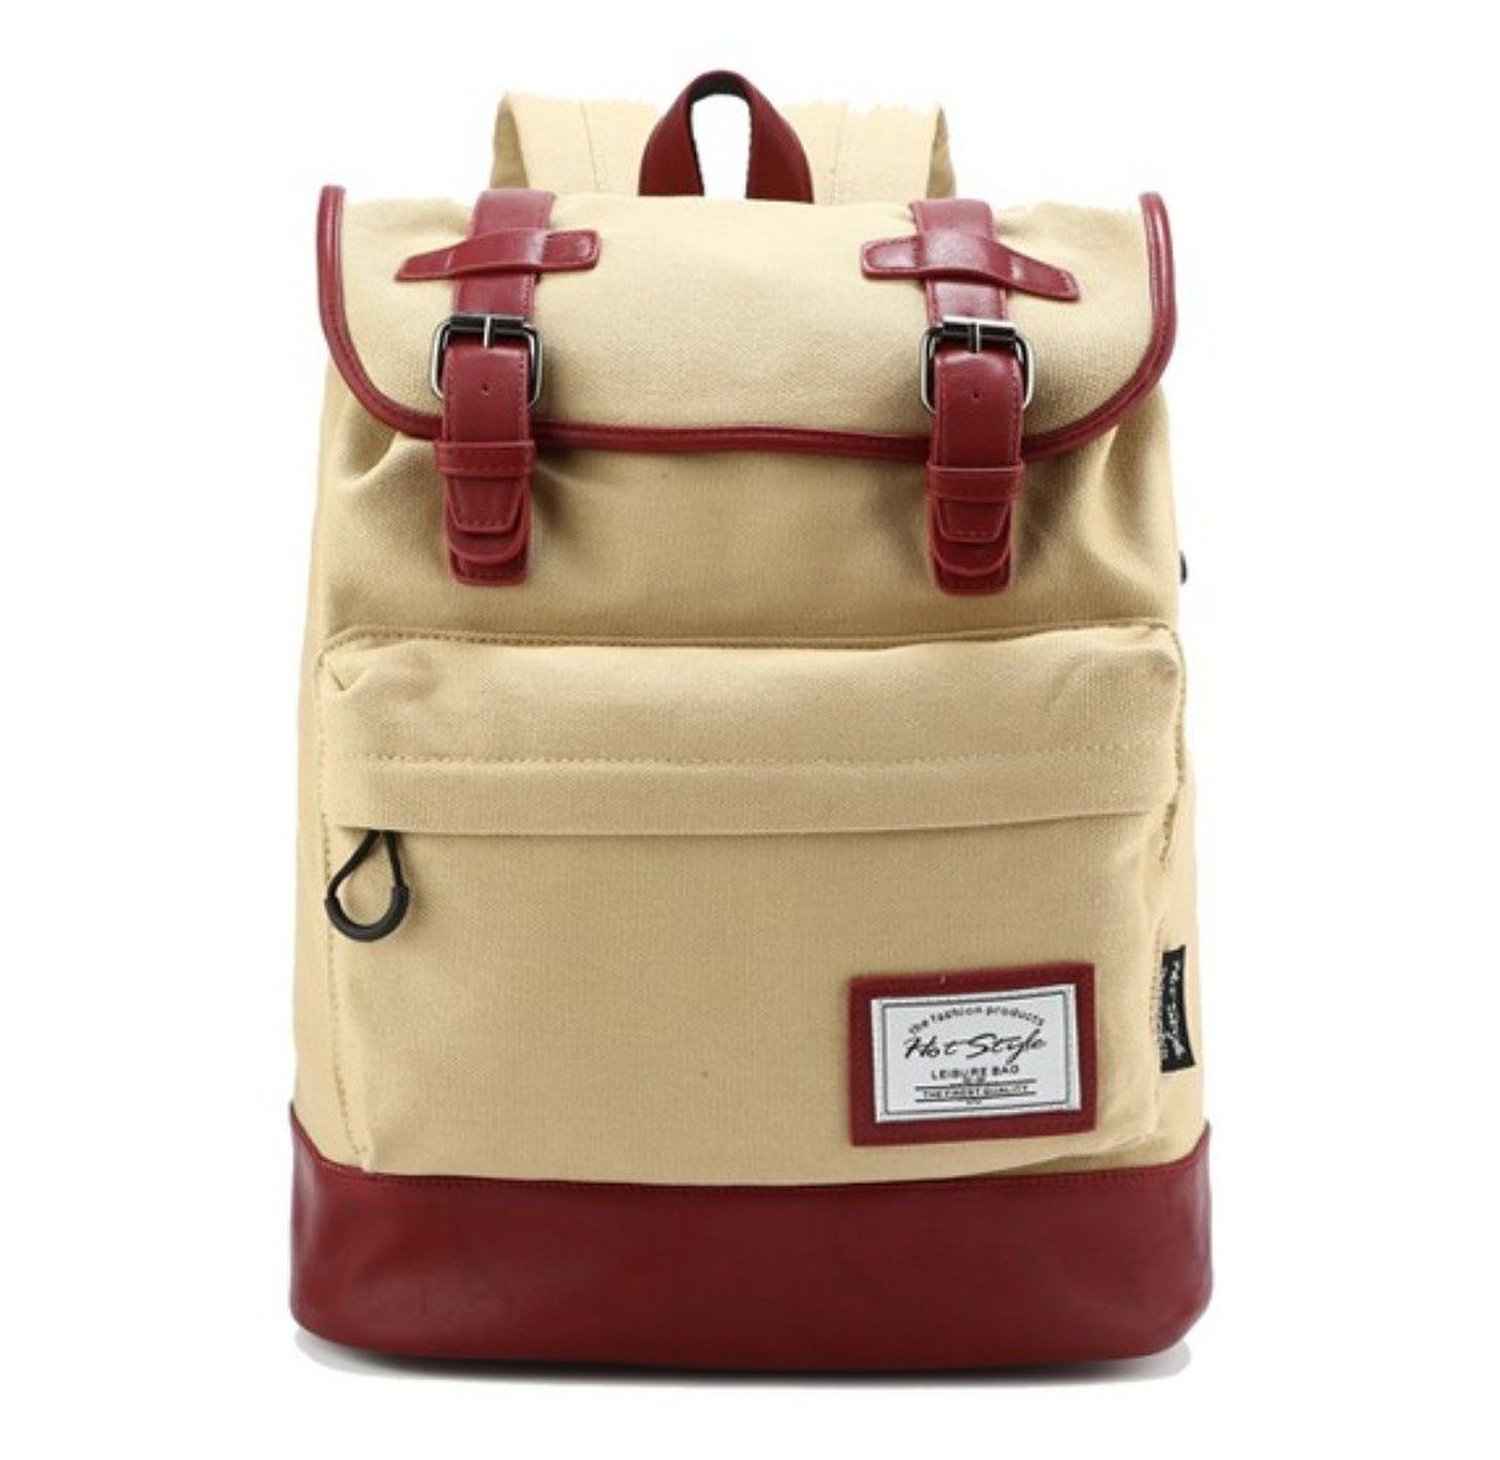 Cute Vintage Backpacks 23vqIyZX